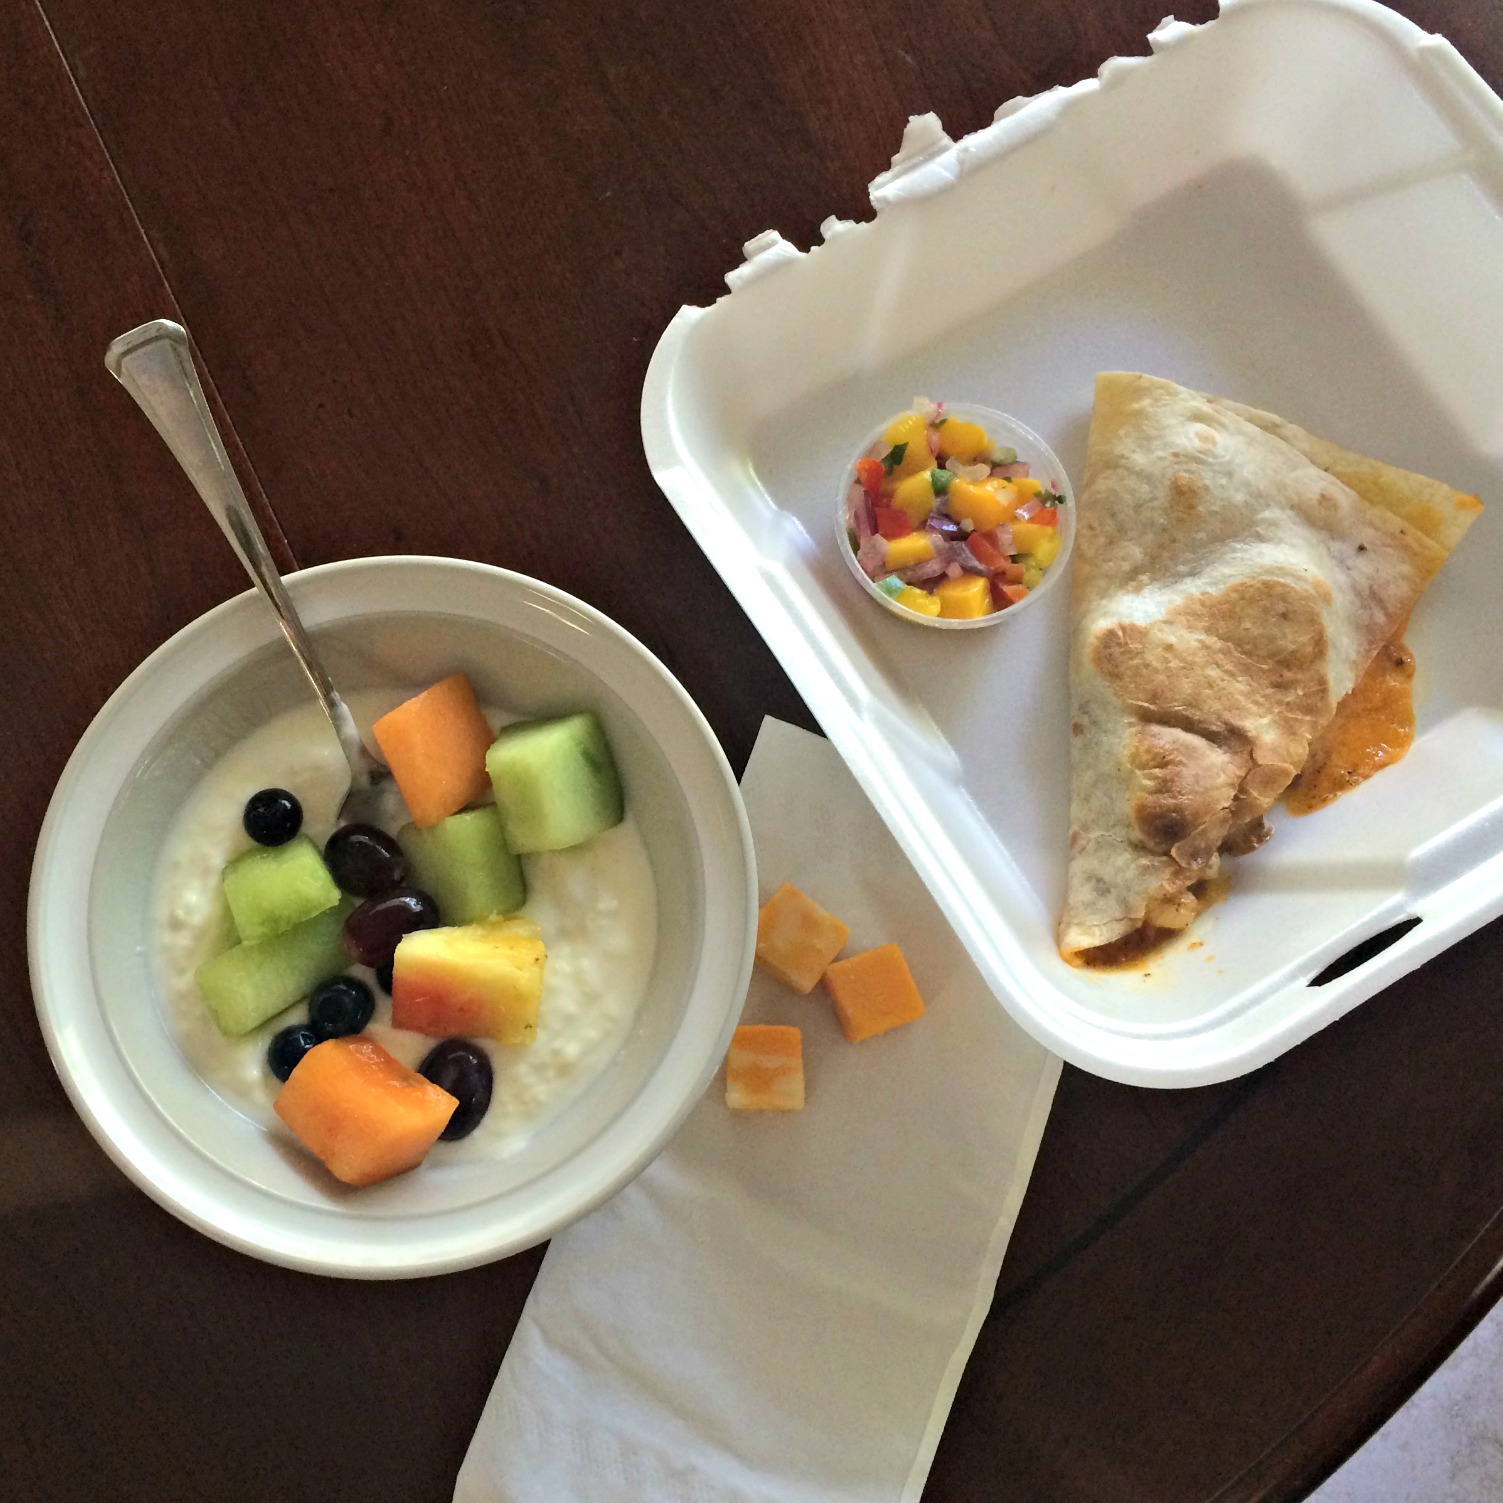 shrimp quesadilla with yogurt and fruit